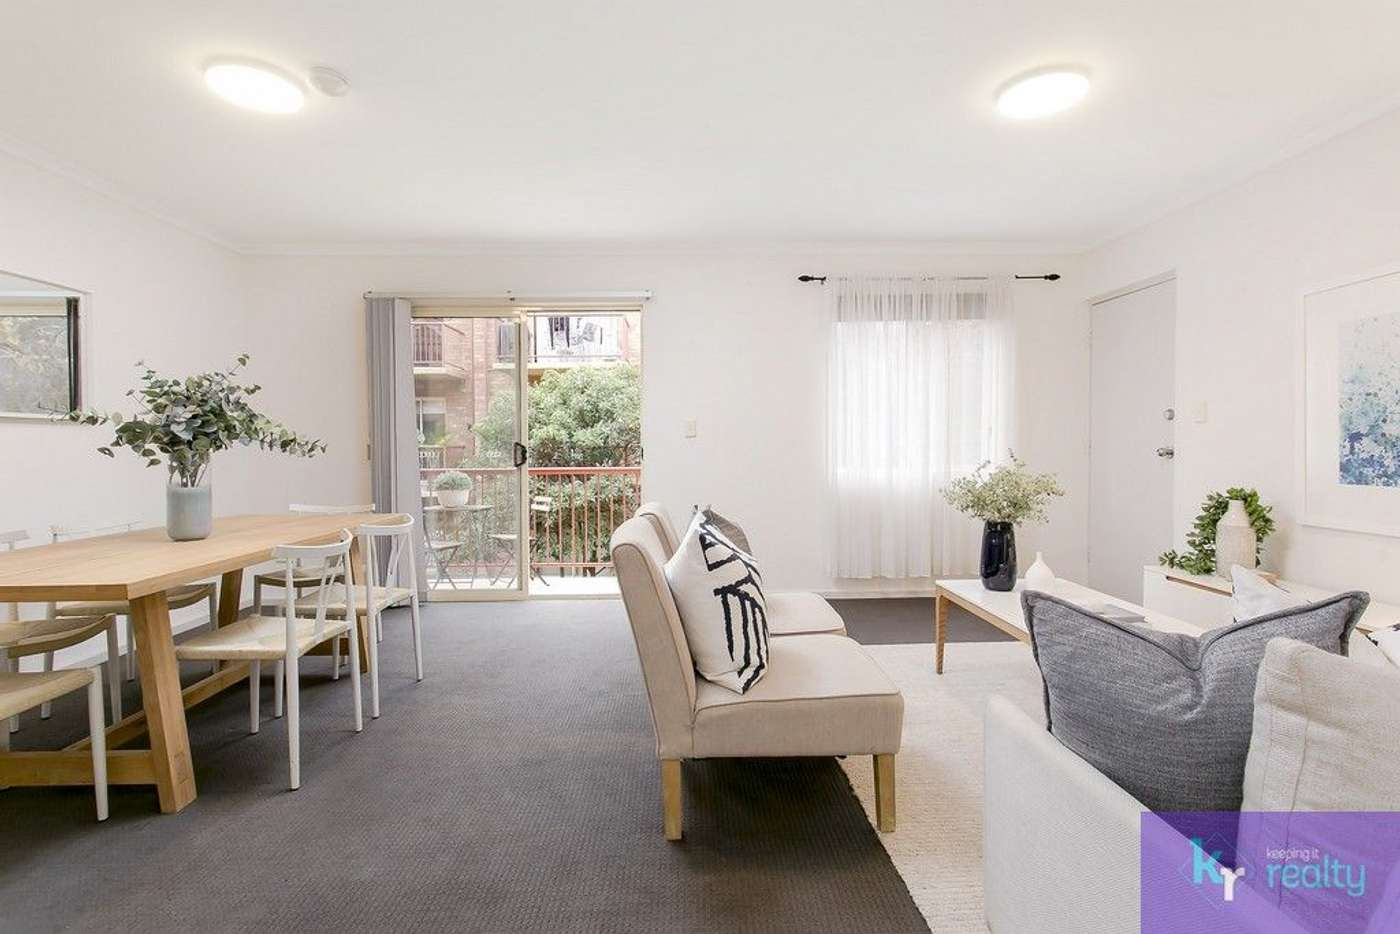 Fifth view of Homely apartment listing, 14/29 St Helena Place, Adelaide SA 5000